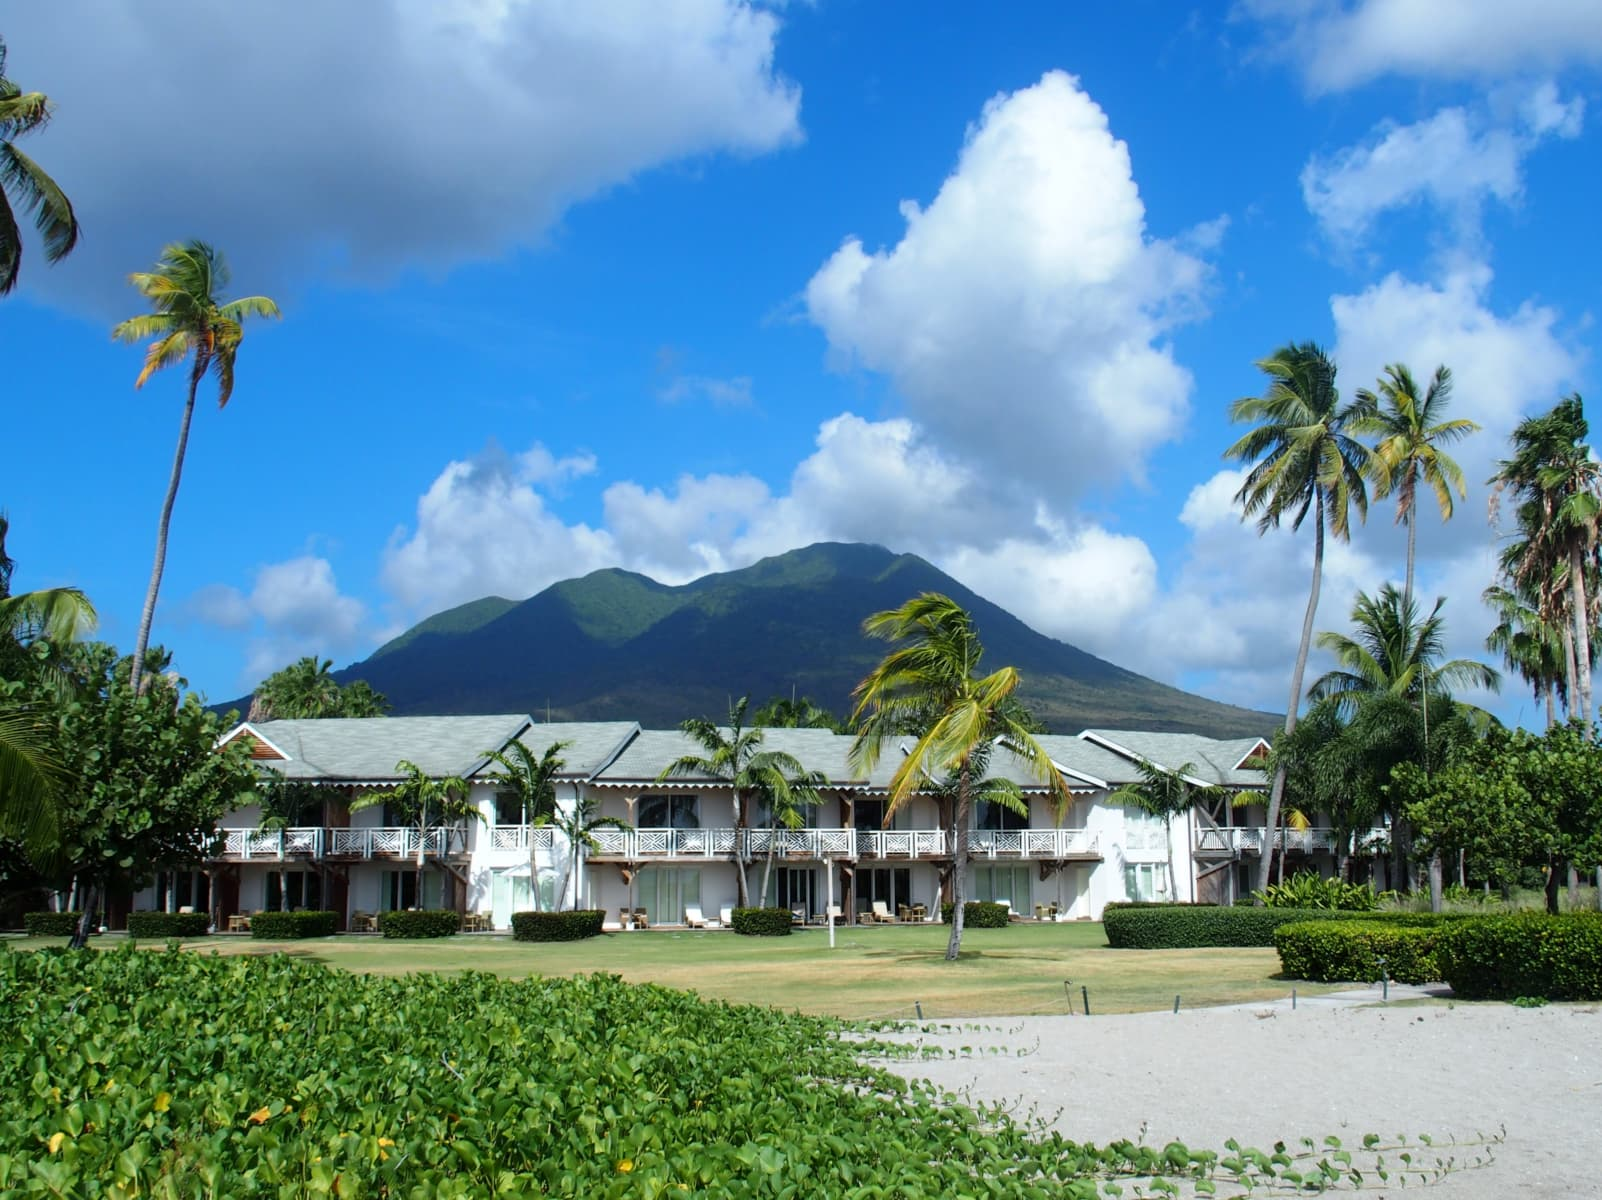 The Four Seasons Resort Nevis - one of the best tennis resorts for your tennis holidays in St. Kitts & Nevis